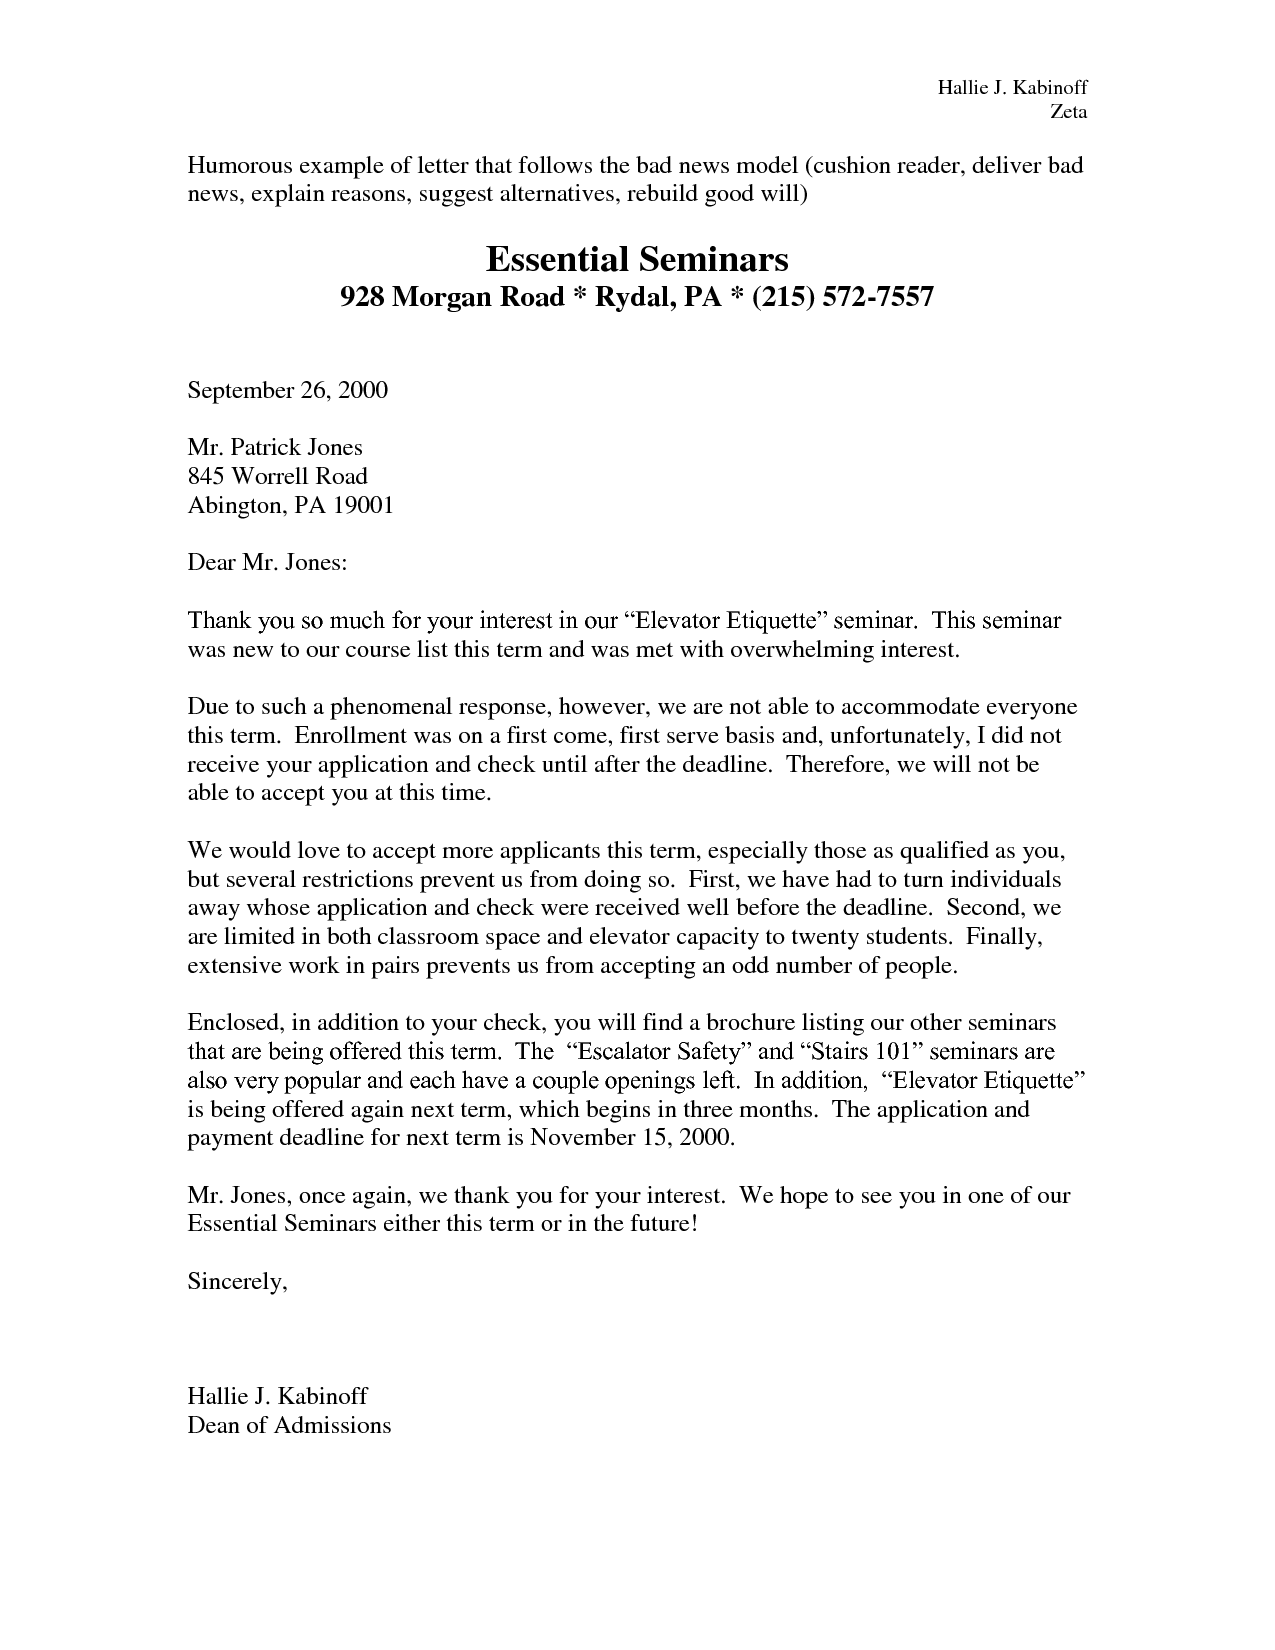 examples bad news business letter example | Business letter